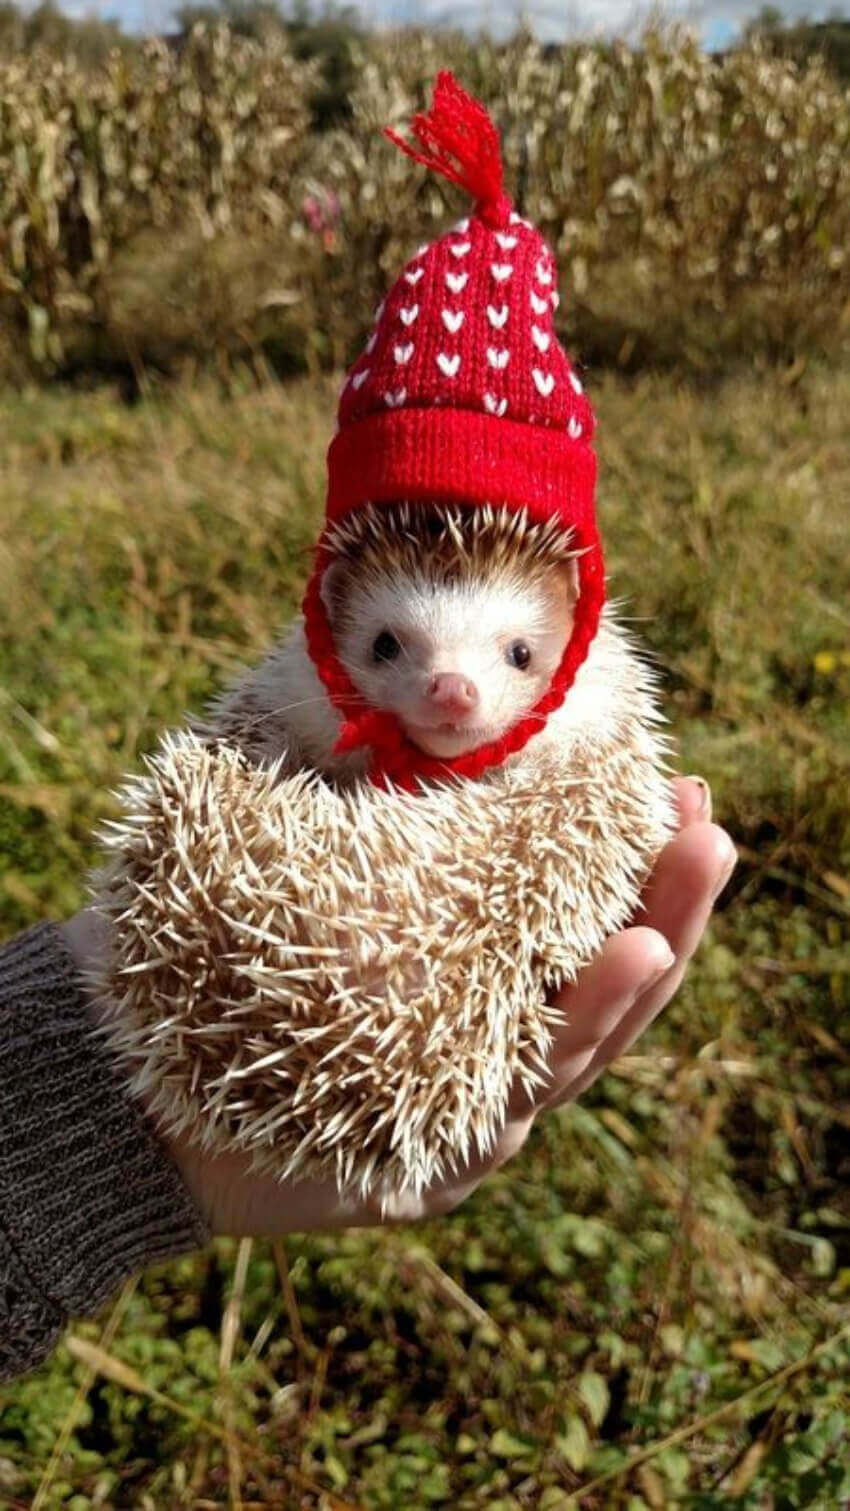 Omg, look at that tiny hat!